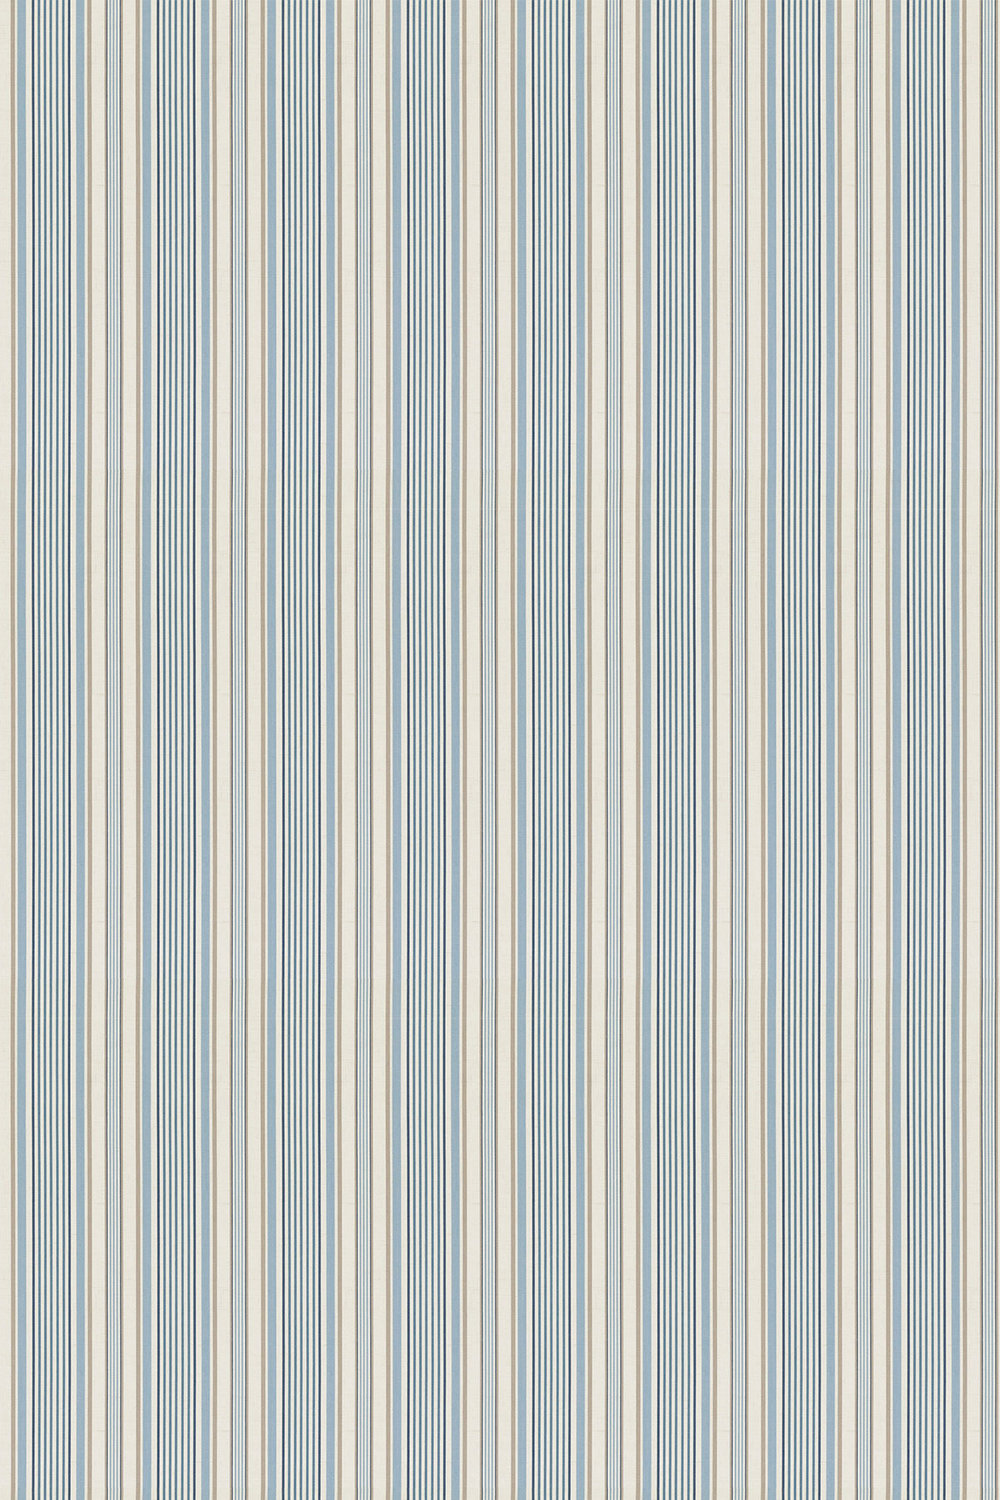 Belle Chambray Fabric - Blue - by Studio G